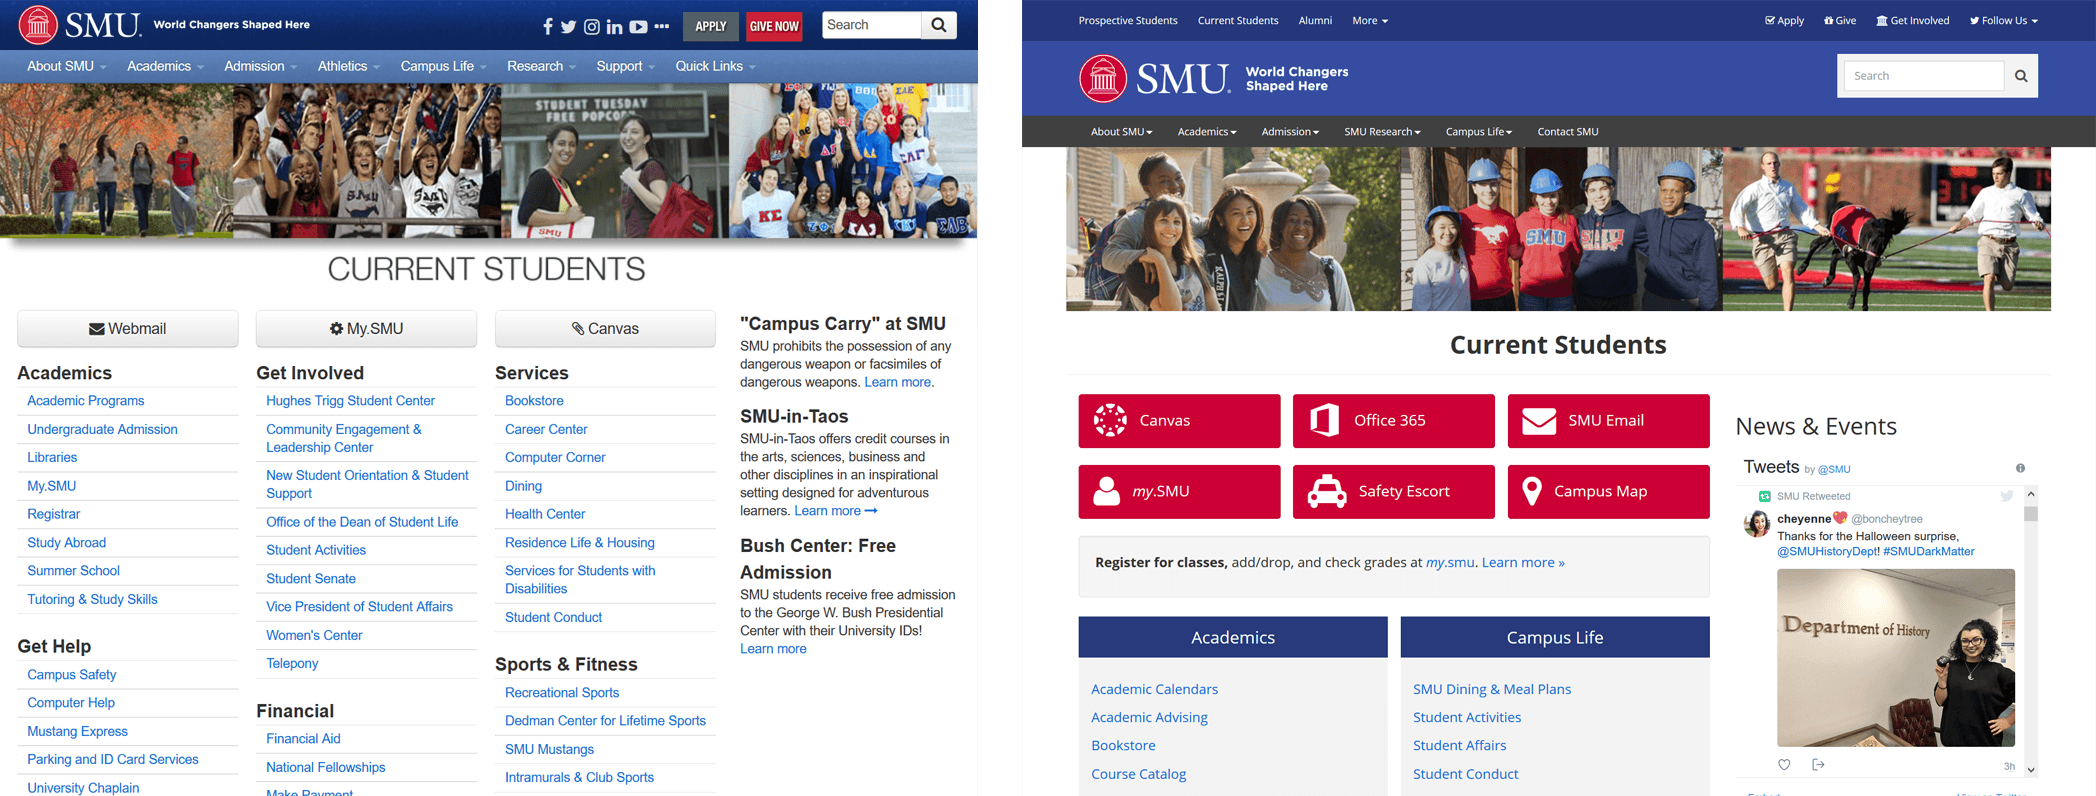 Before and After images of the SMU Current Students page